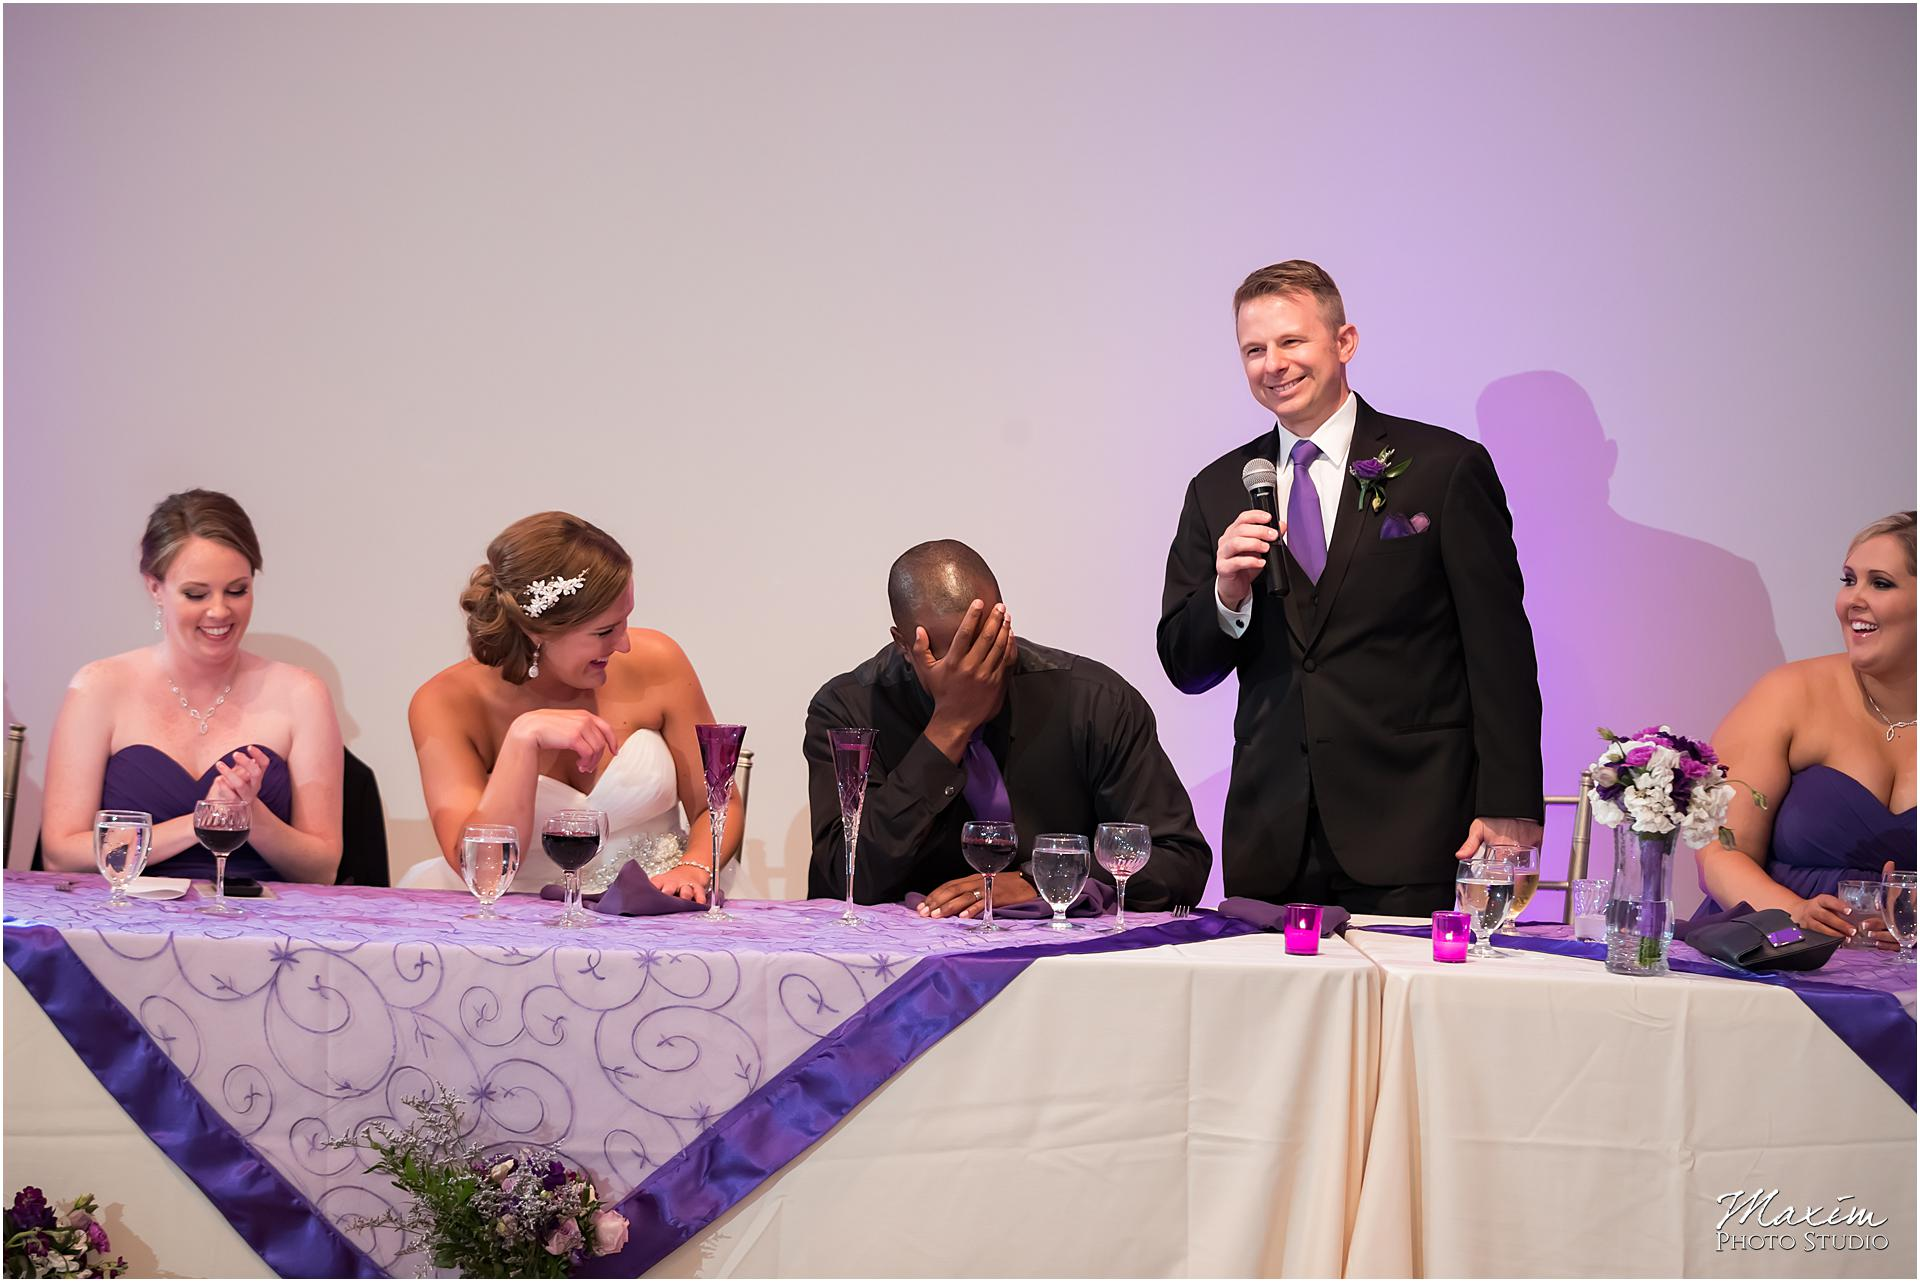 The Center Cincinnati Wedding Reception toast